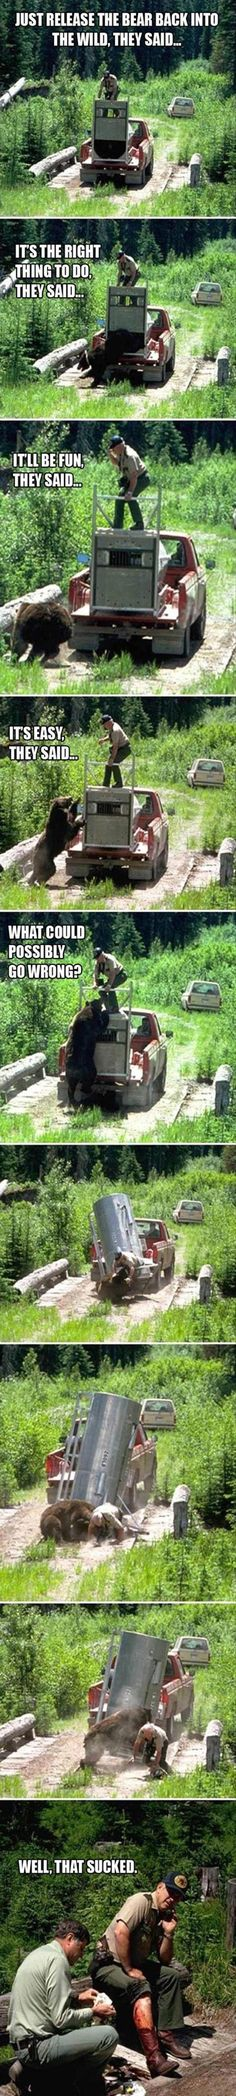 Release the Bear   // funny pictures - funny photos - funny images - funny pics - funny quotes - #lol #humor #funnypictures